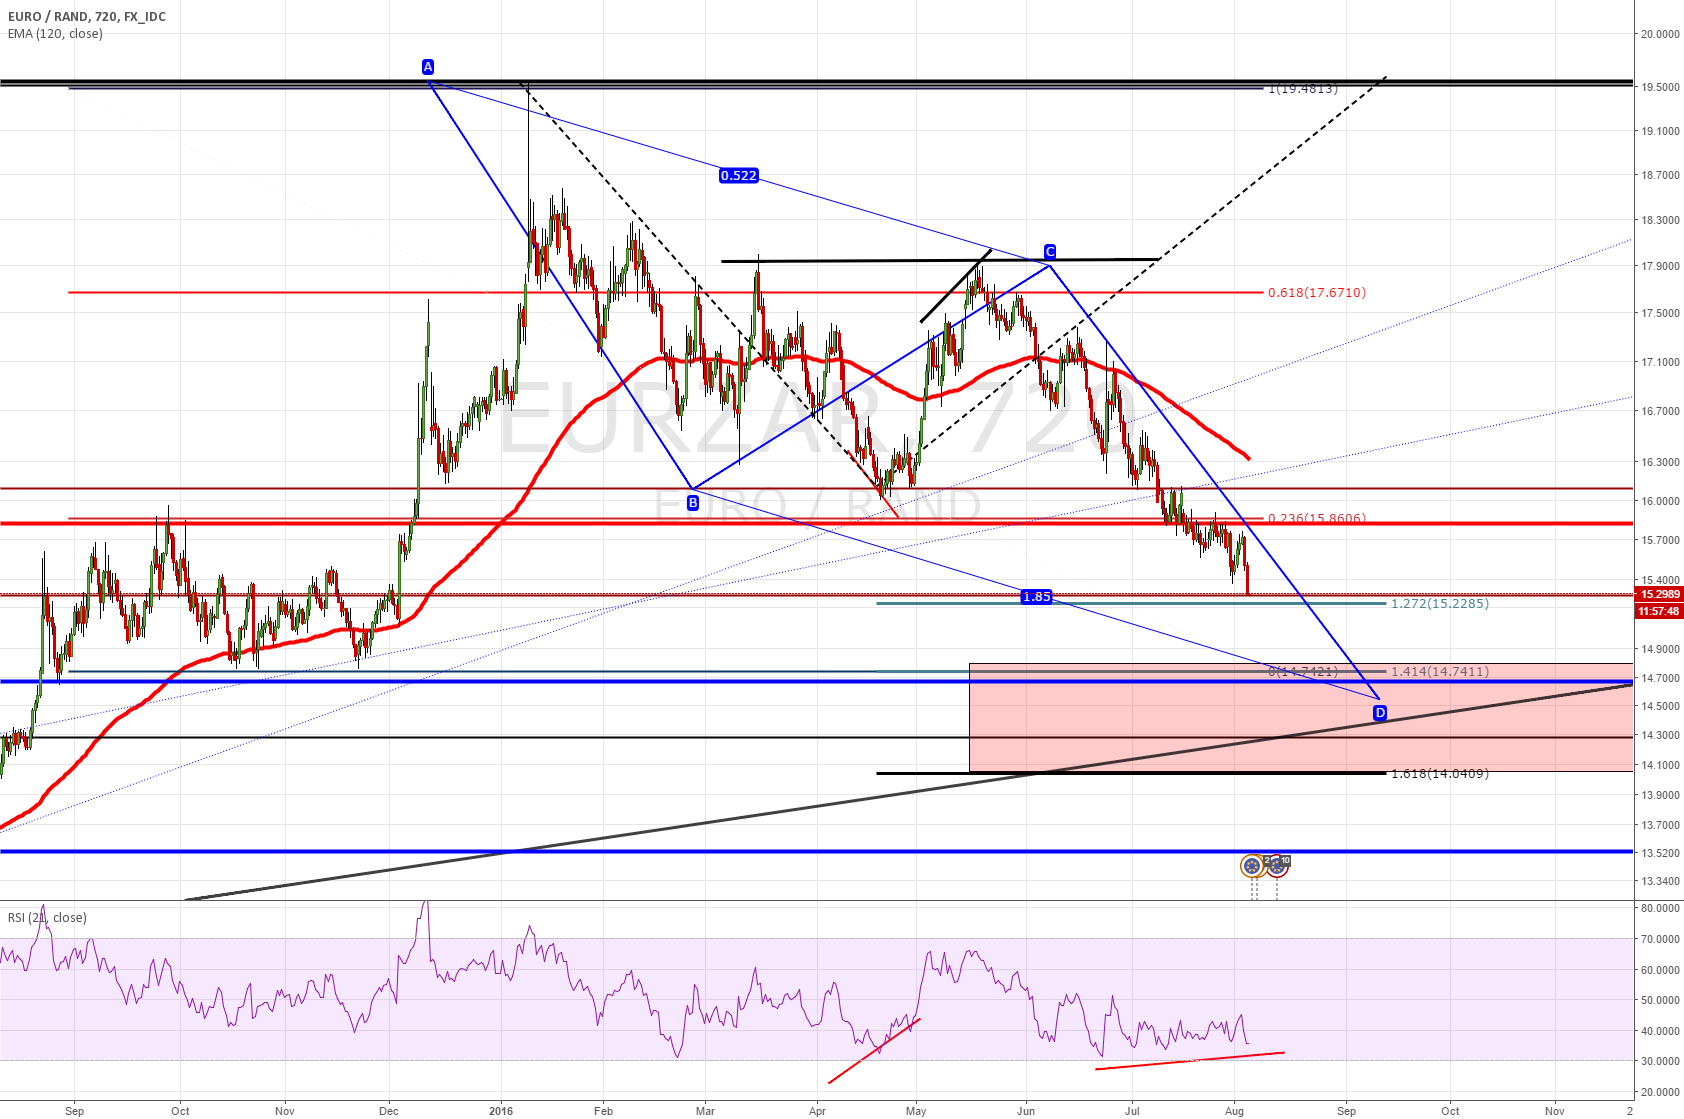 EURZAR - LEVEL TO WATCH ON EXTENSION